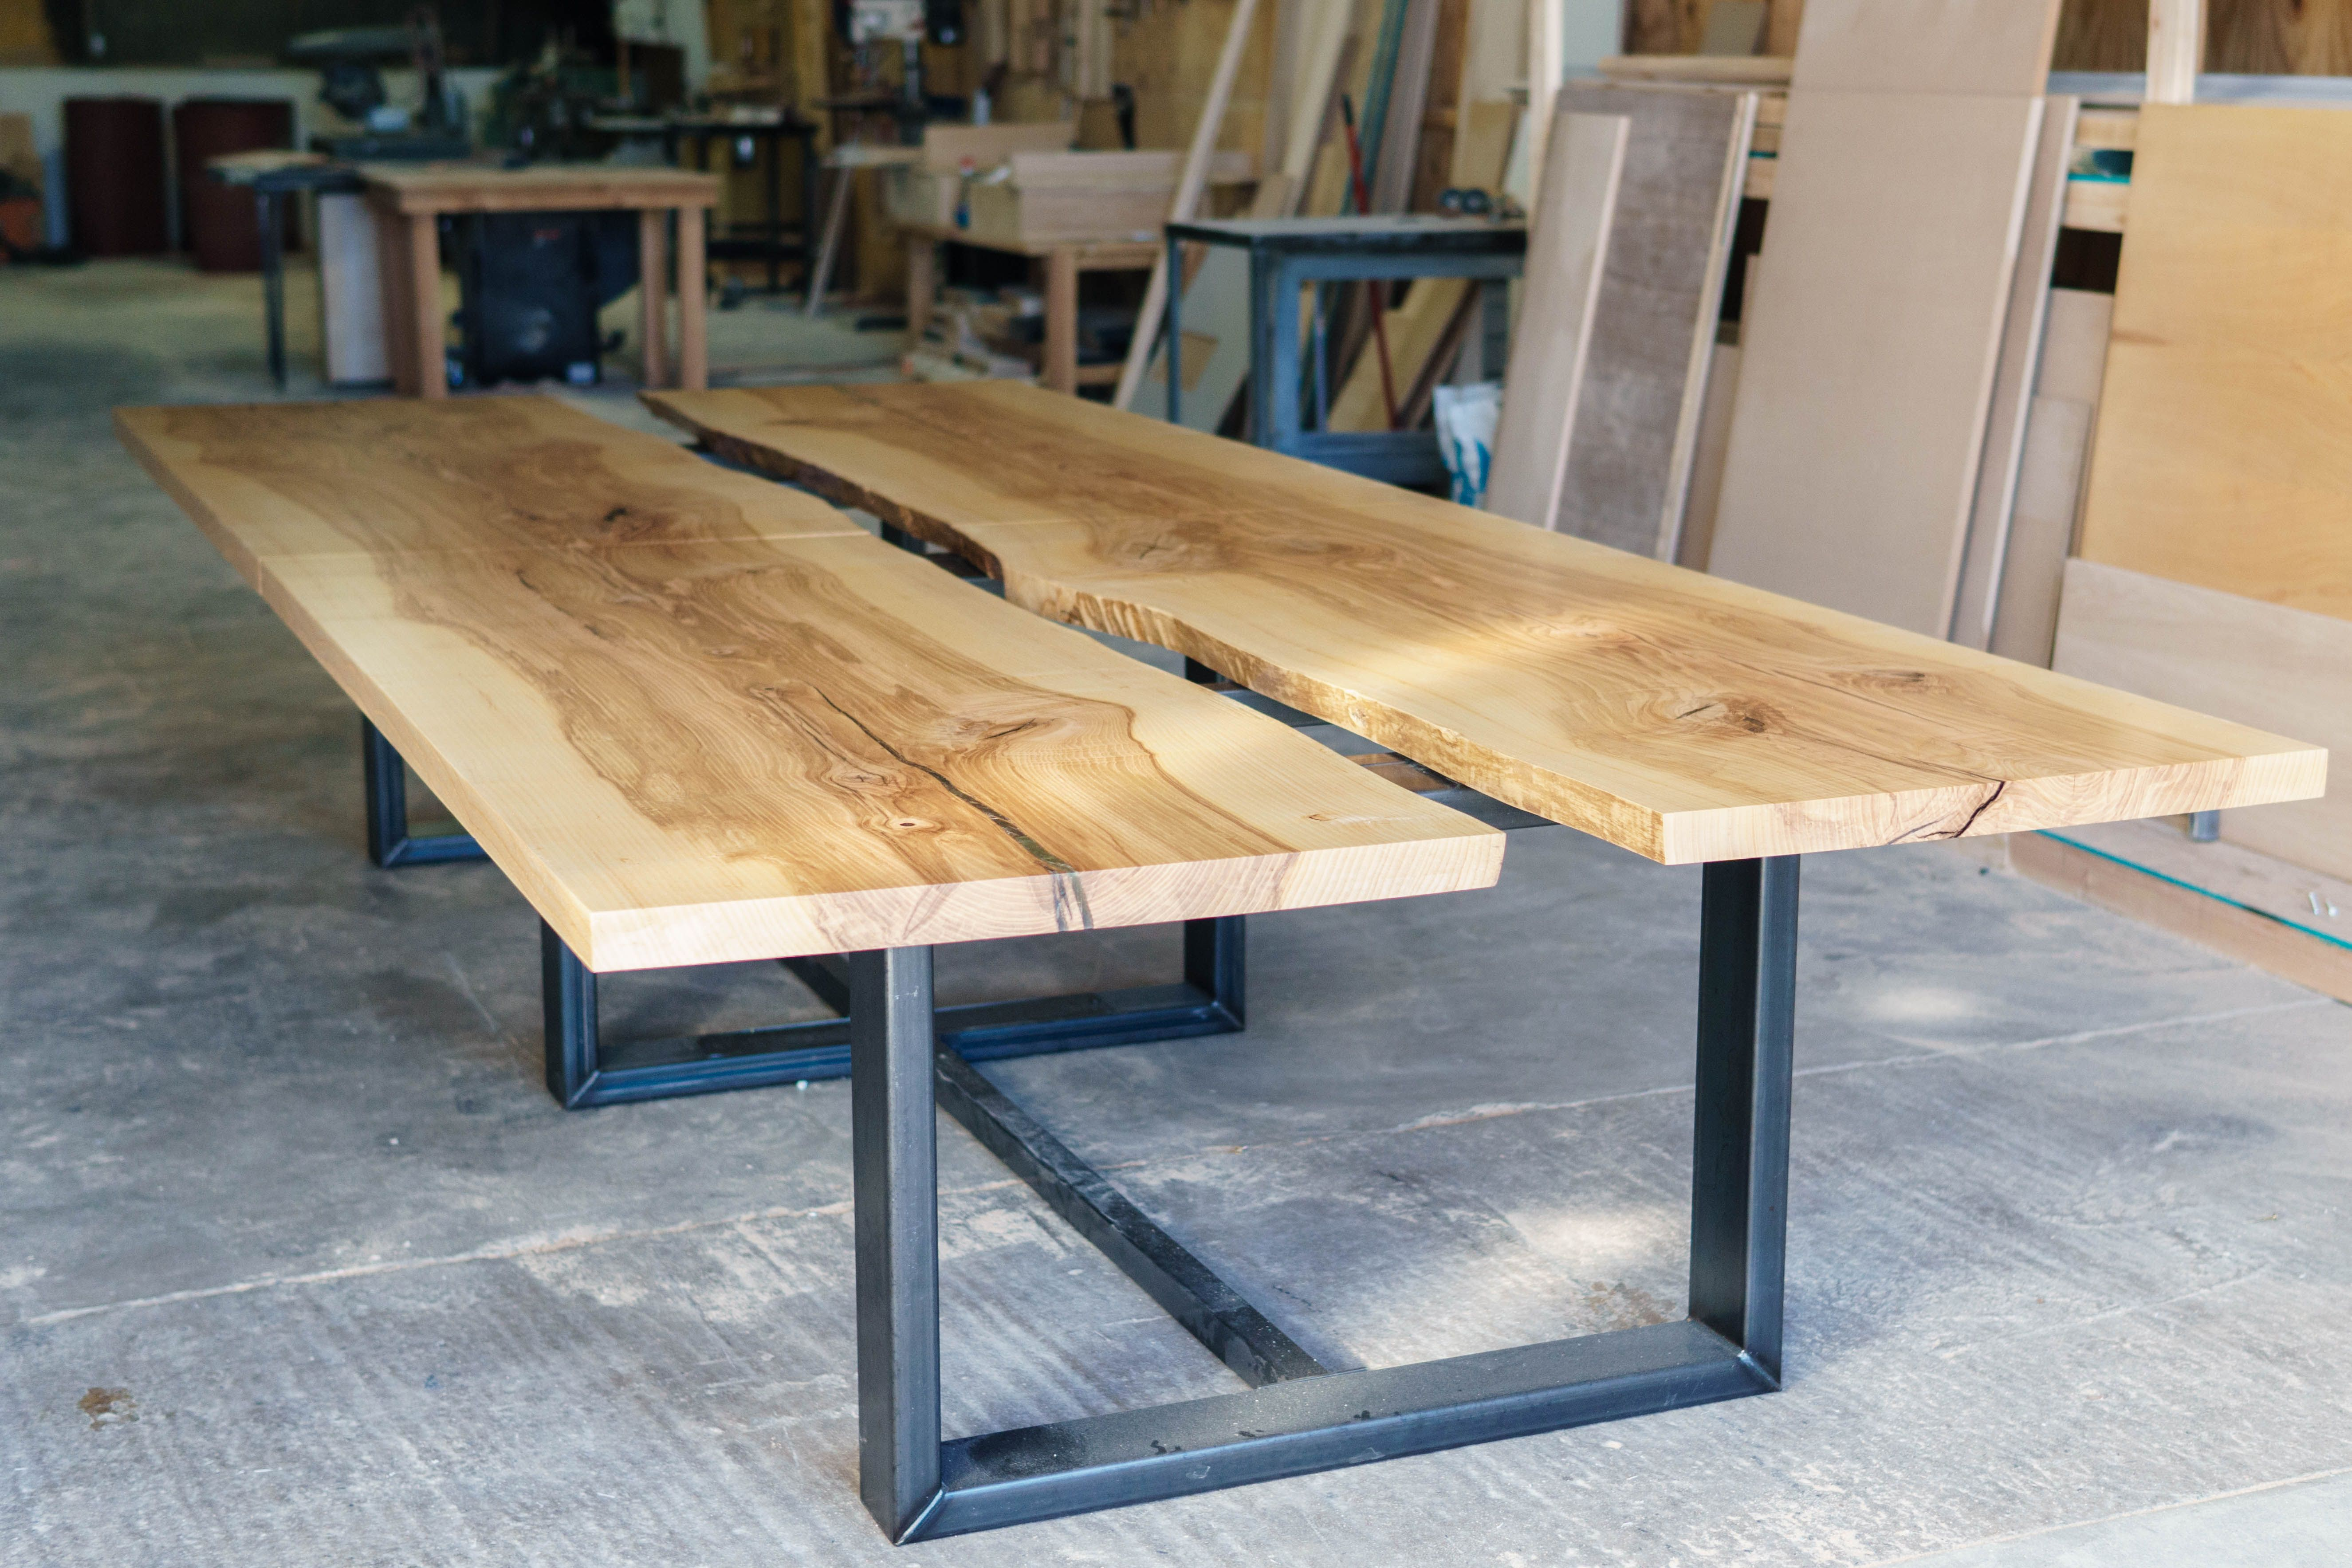 ... Live Edge Conference Table Proudly Made By Greg Pilotti Furniture Makers.  This Table Is Made From Two Bookmatched Ash Slabs Sourced From Pennsylvania.